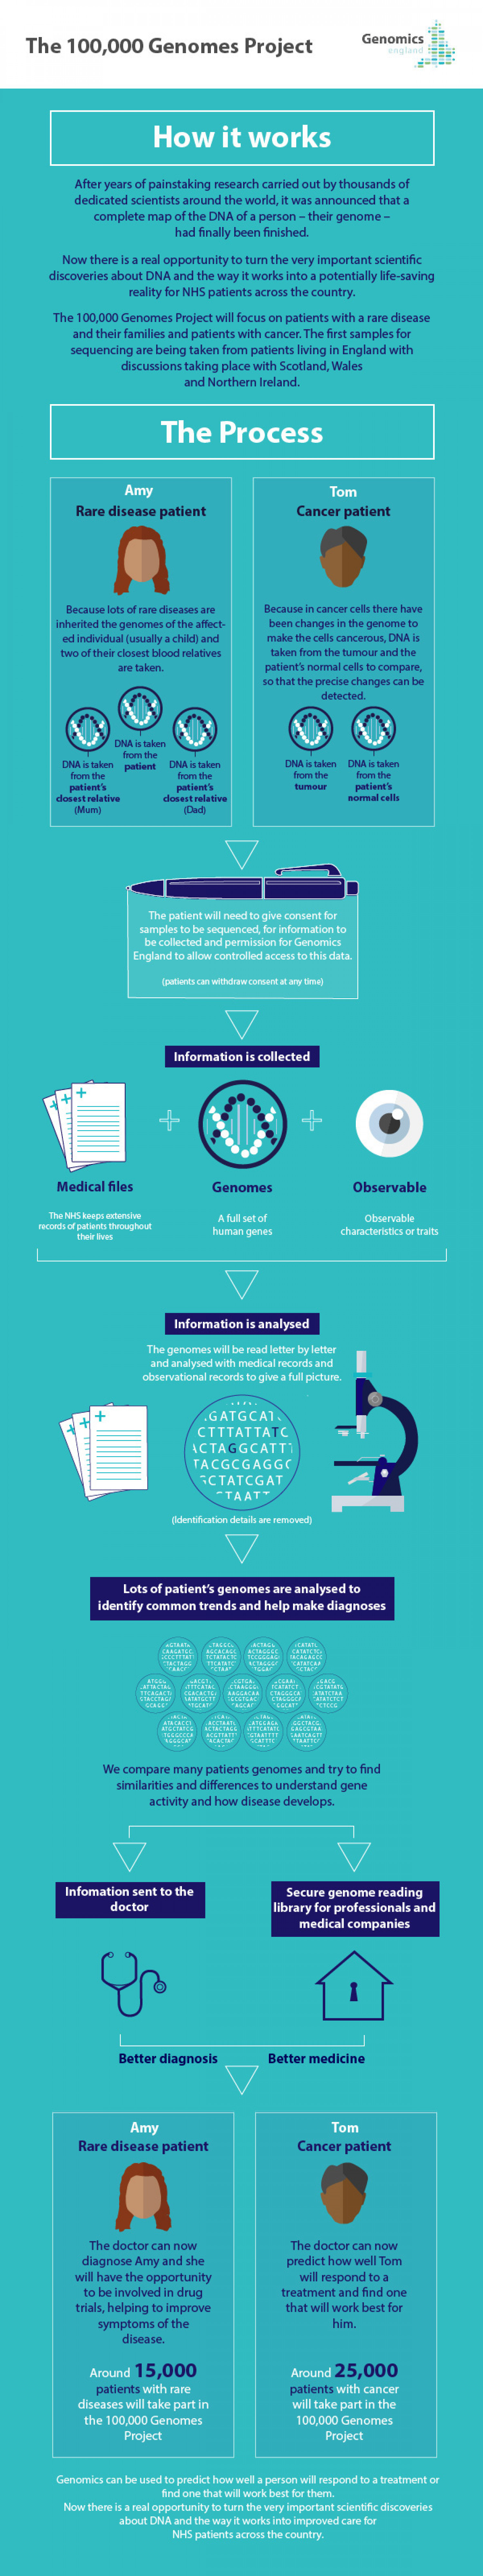 The 100K Genomes Project  -  The Process  Infographic